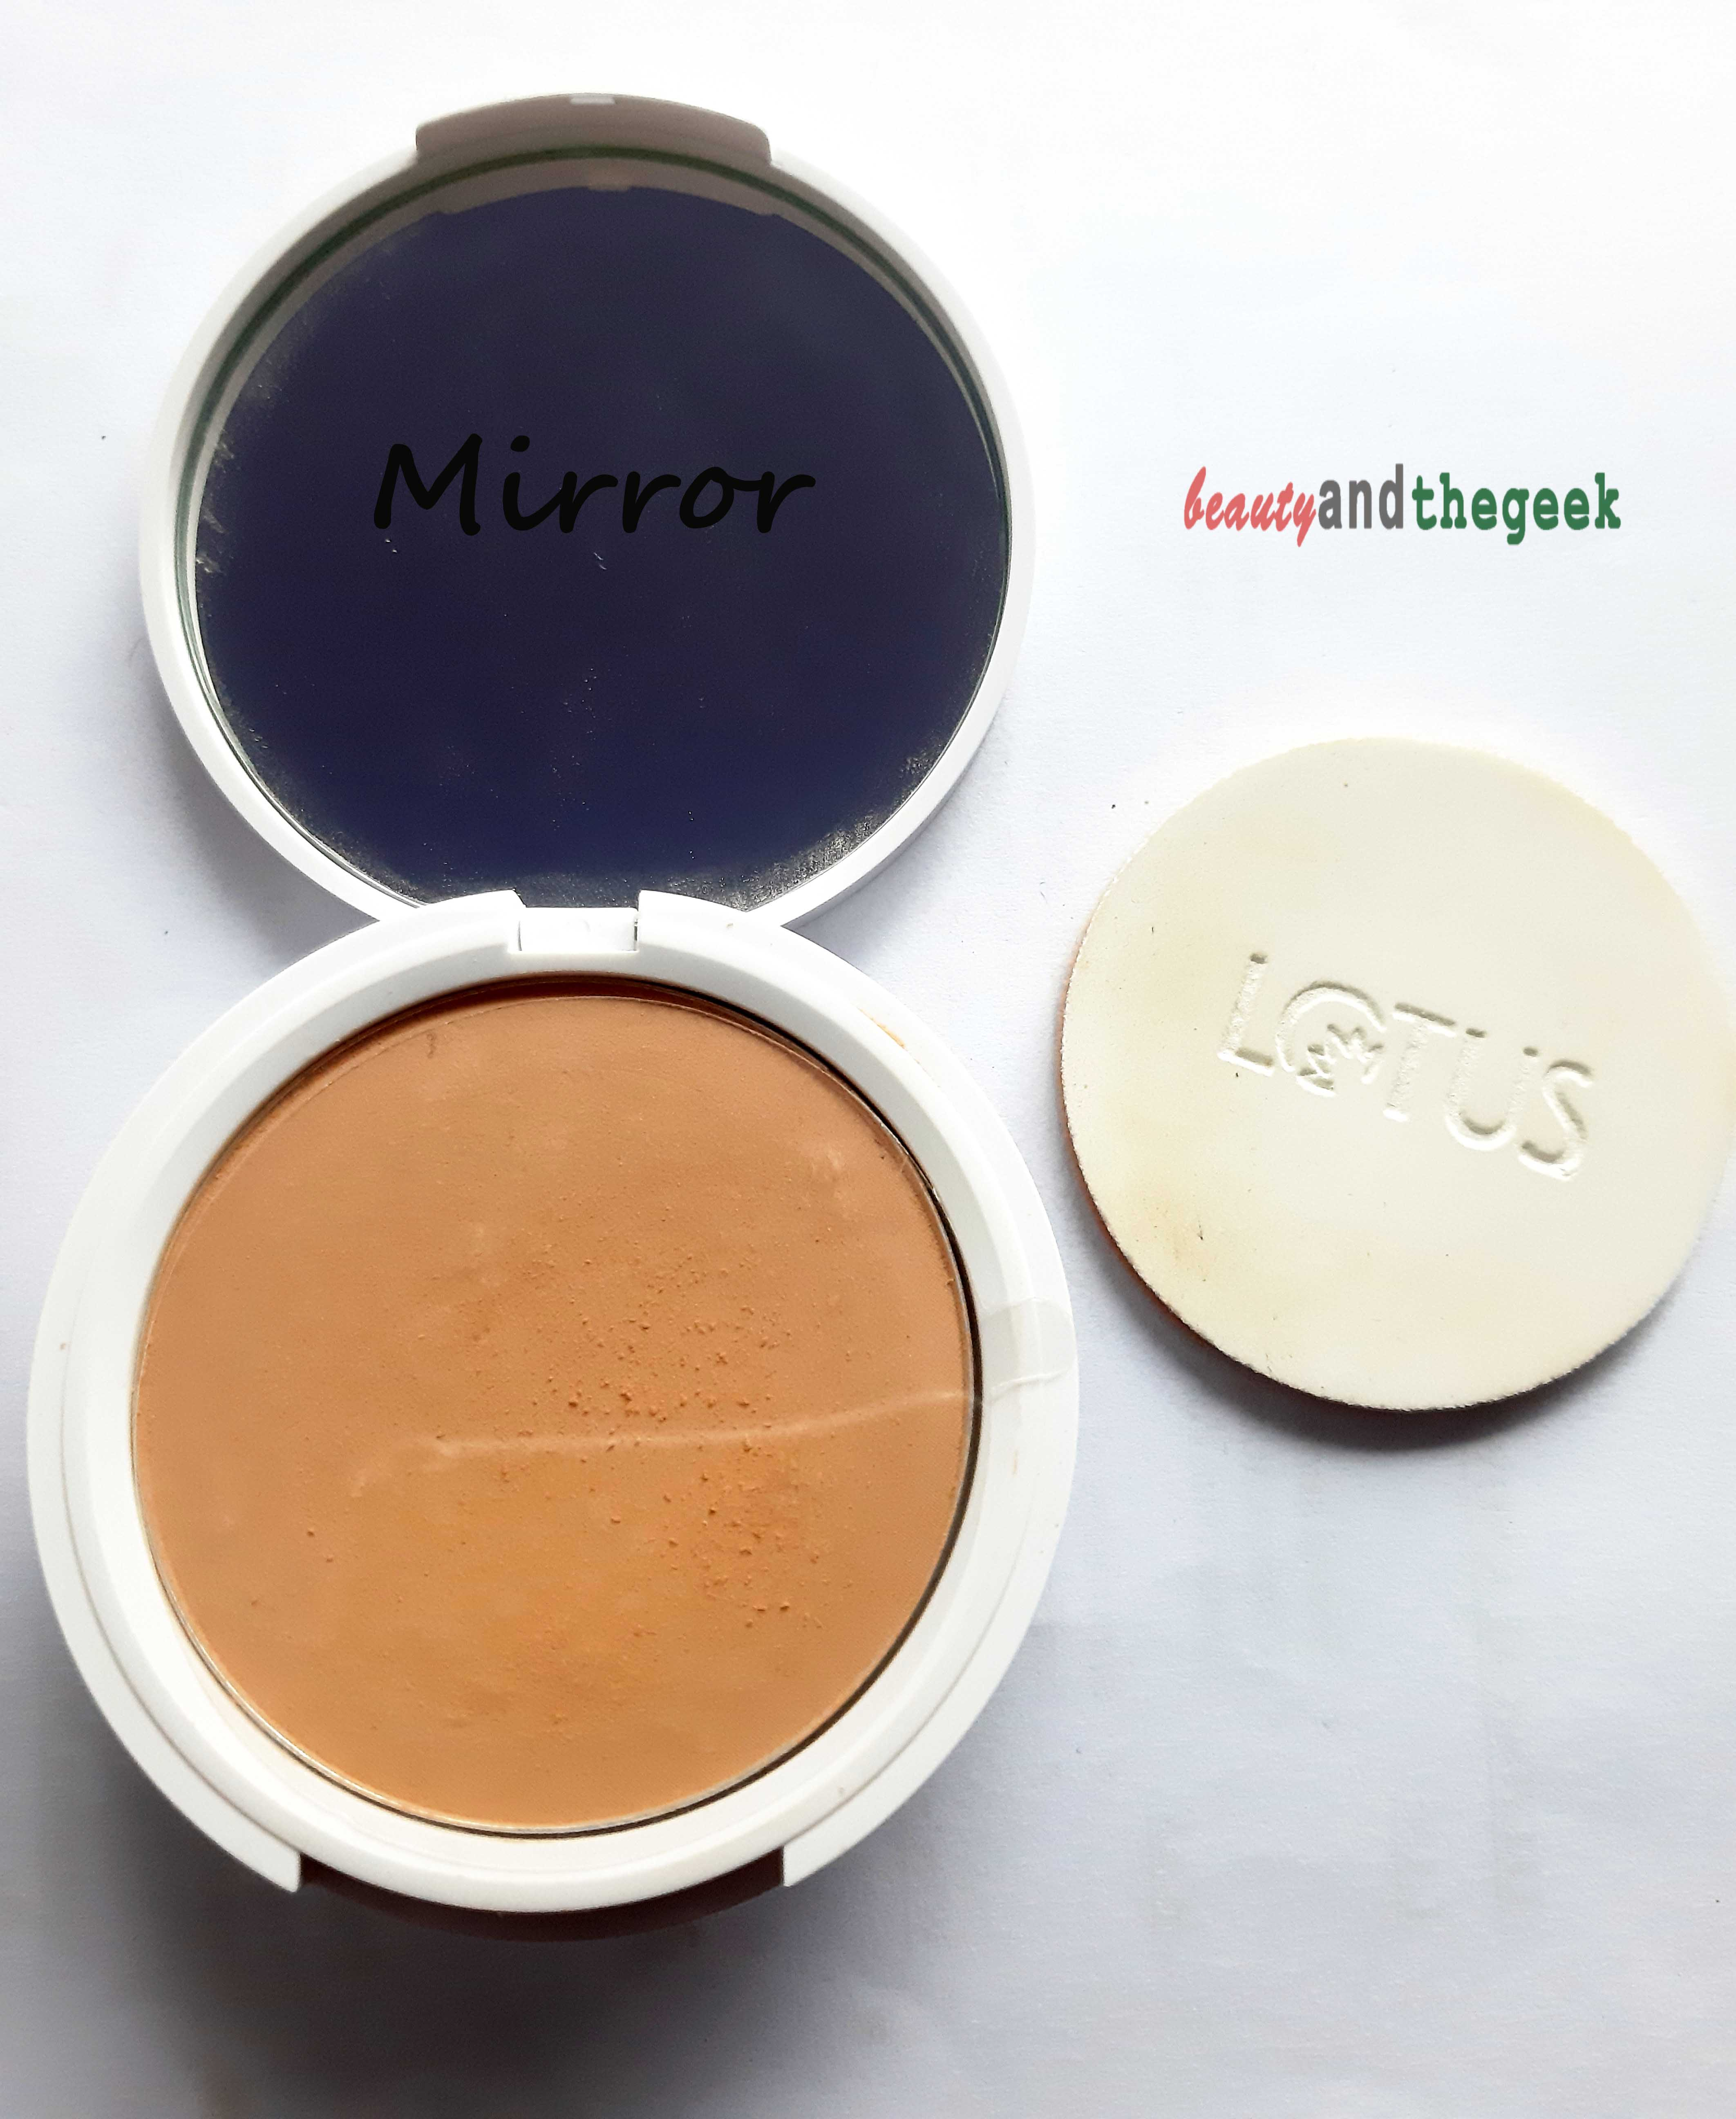 Lotus Herbals WhiteGlow Flawless Complexion Compact Powder